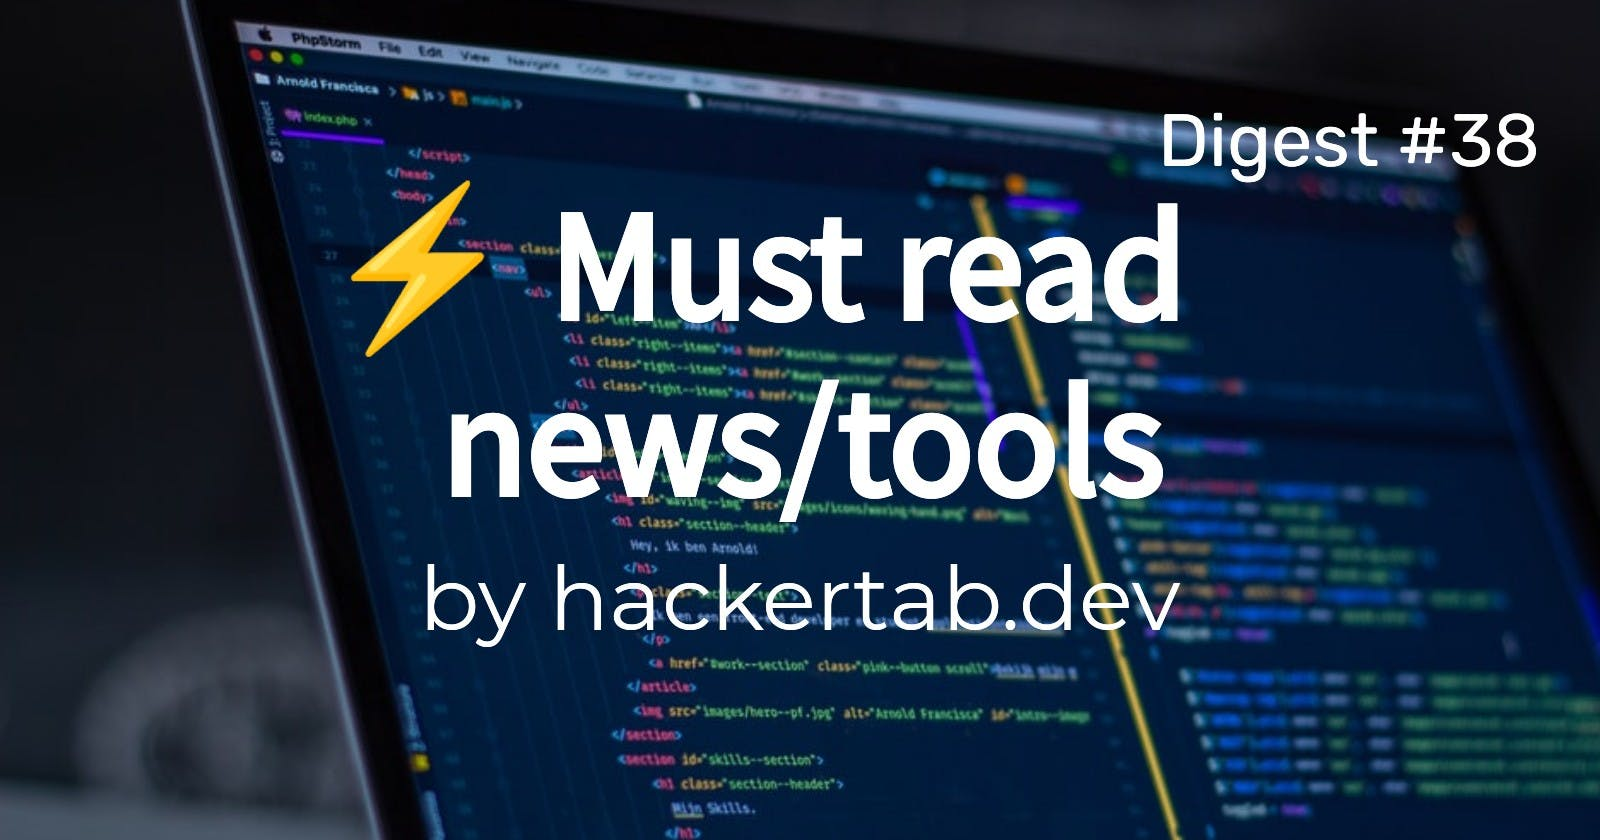 🔥 Trending News, Repos and Products of the day - Digest #38